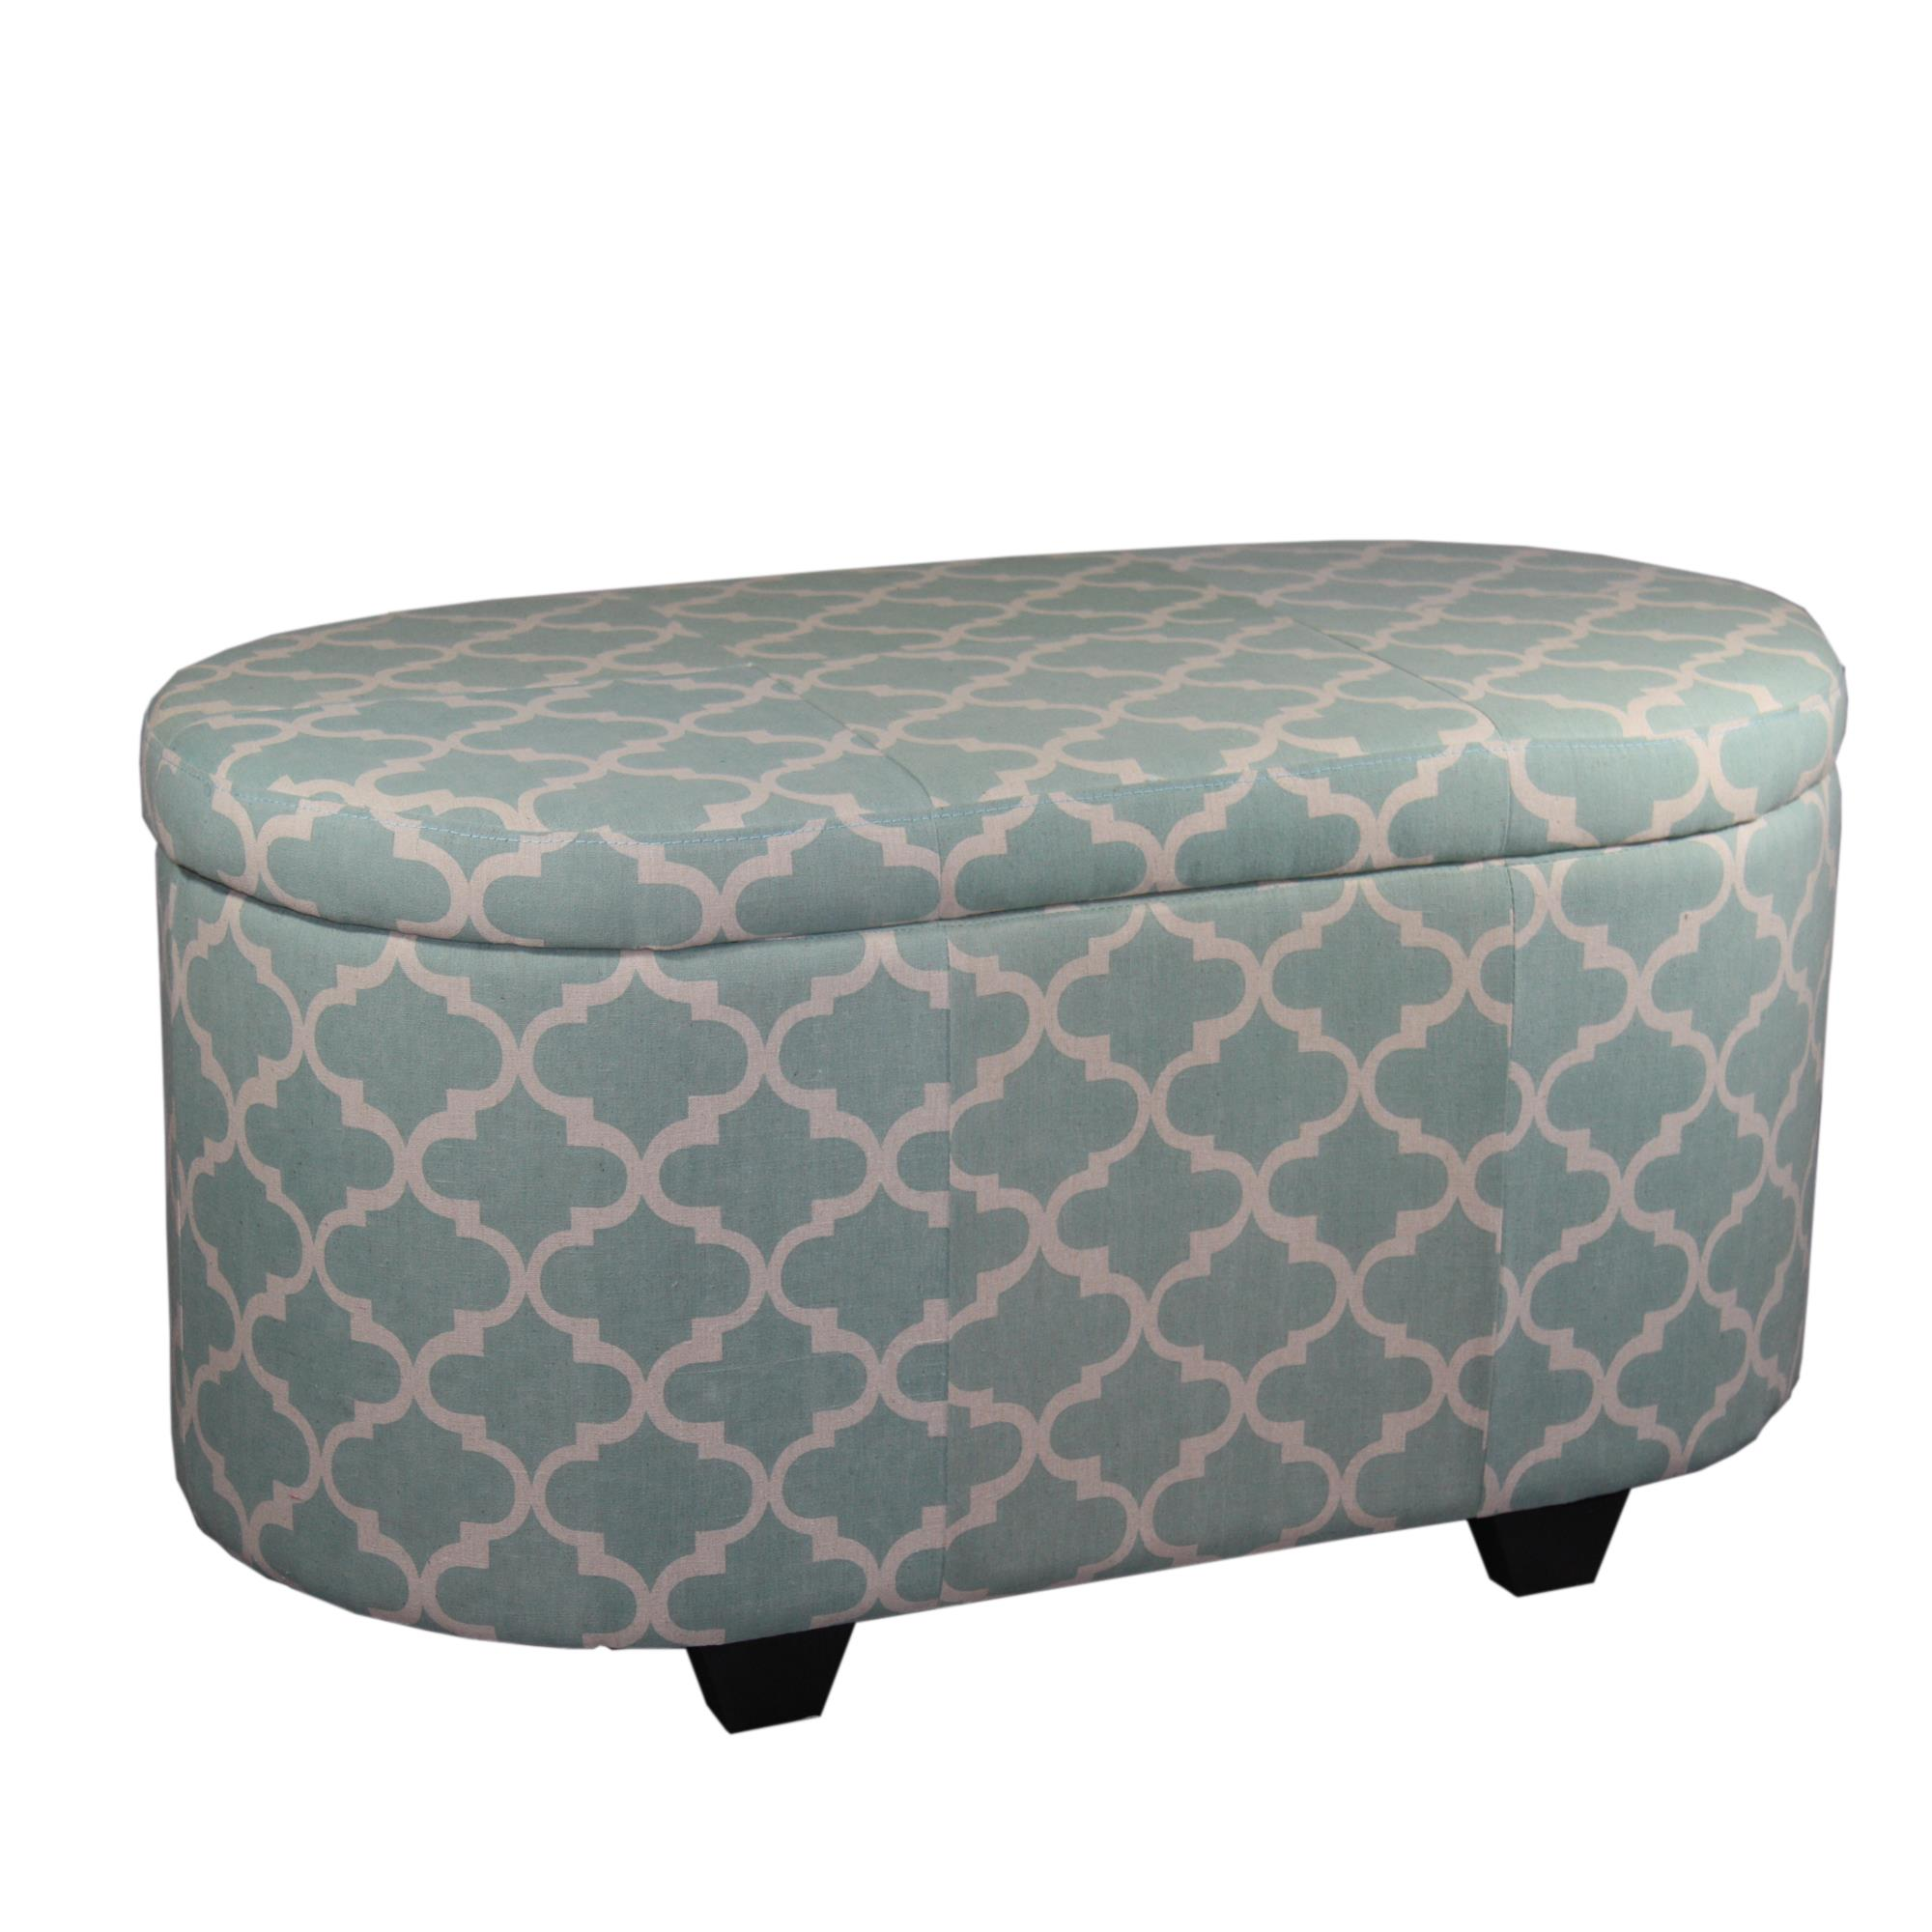 "18.7""H Moroccan Clover Teal Storage Ottoman Plus Extra Seating"